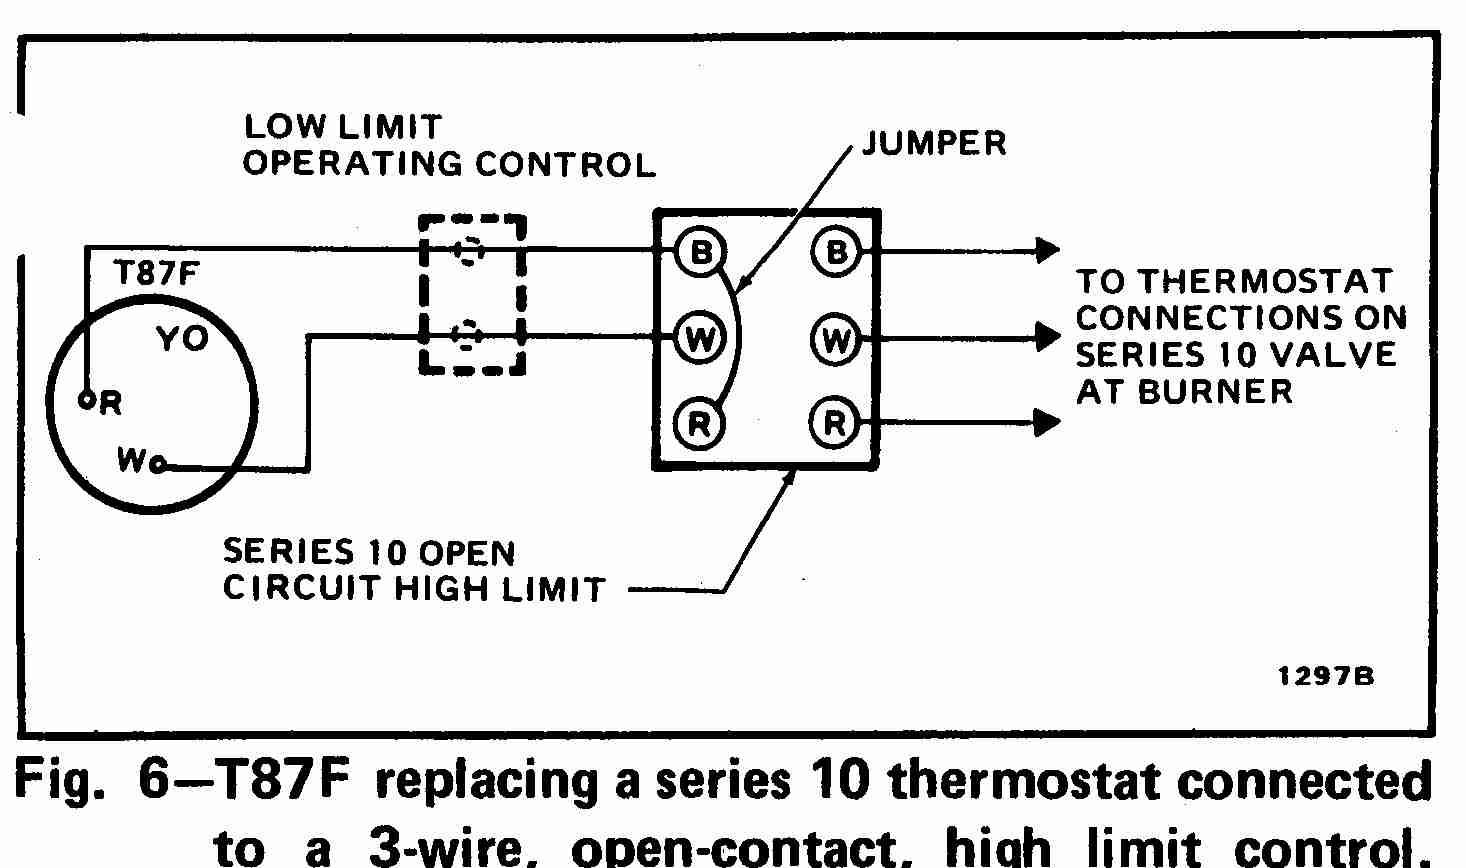 TT_T87F_0002_3WHL_DJF room thermostat wiring diagrams for hvac systems wiring diagram for thermostat at virtualis.co